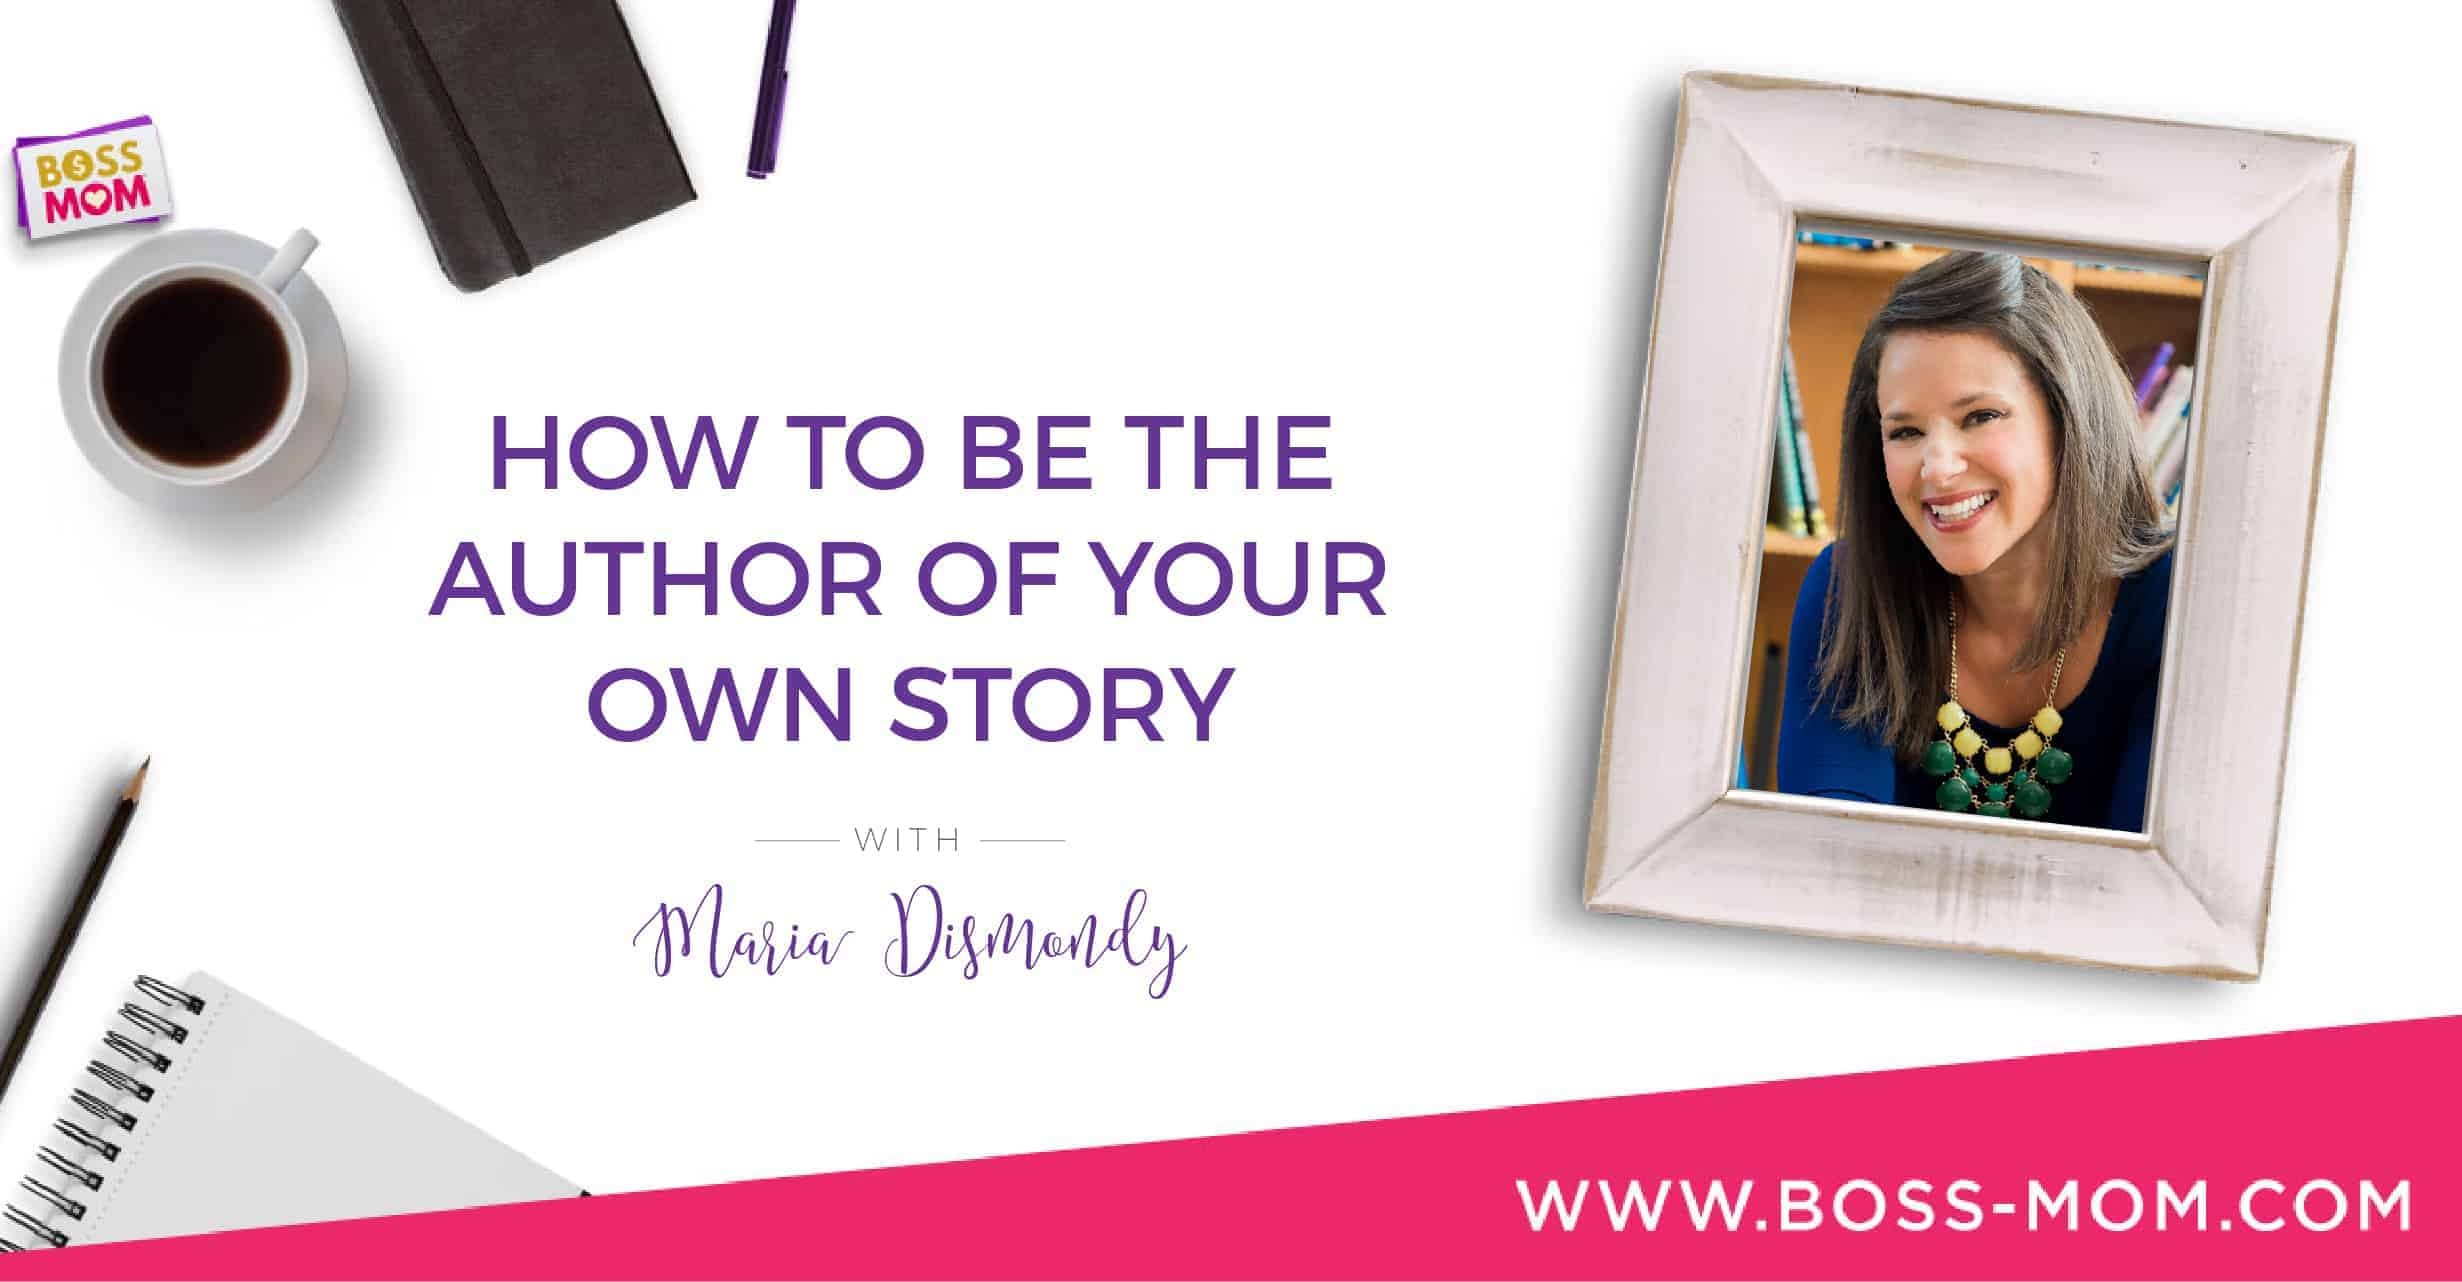 Episode 180: How to Be the Author of Your Own Story with Maria Dismondy